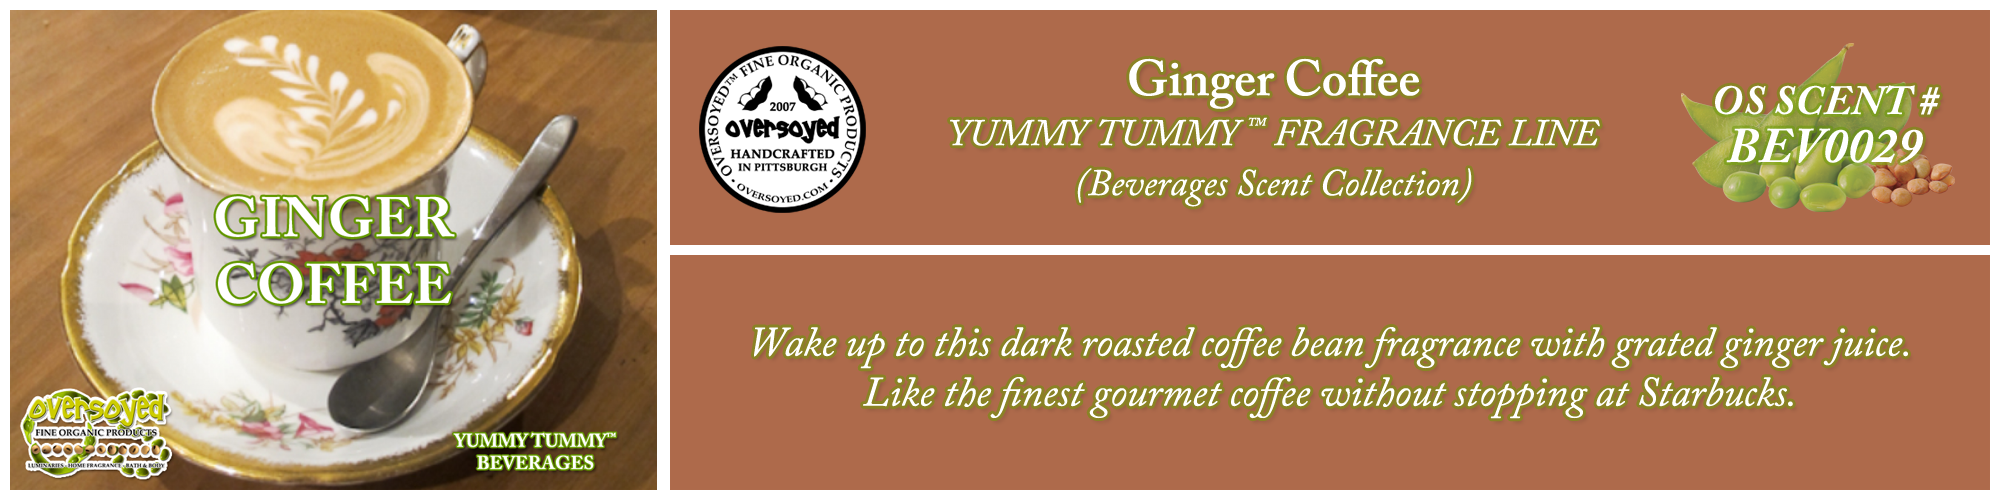 Ginger Coffee Handcrafted Products Collection